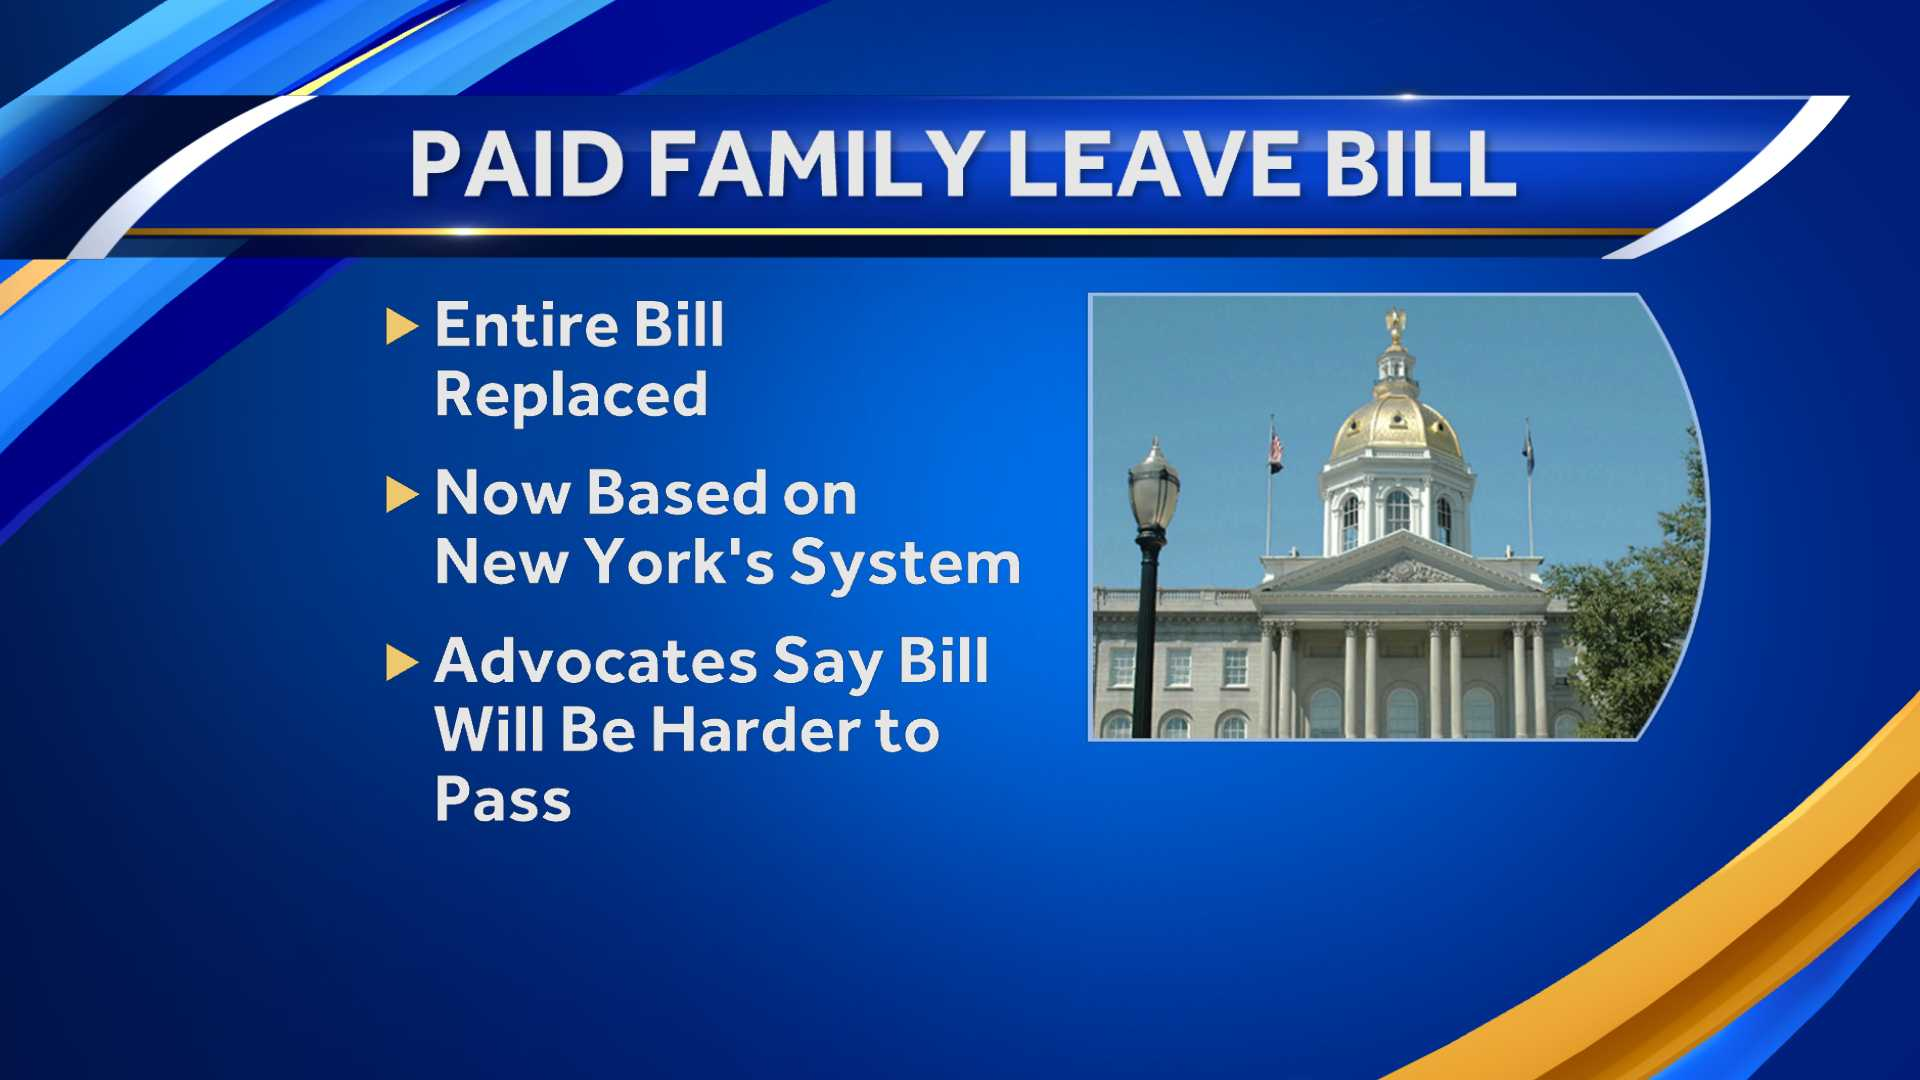 Paid family leave bill overhauled Wednesday night